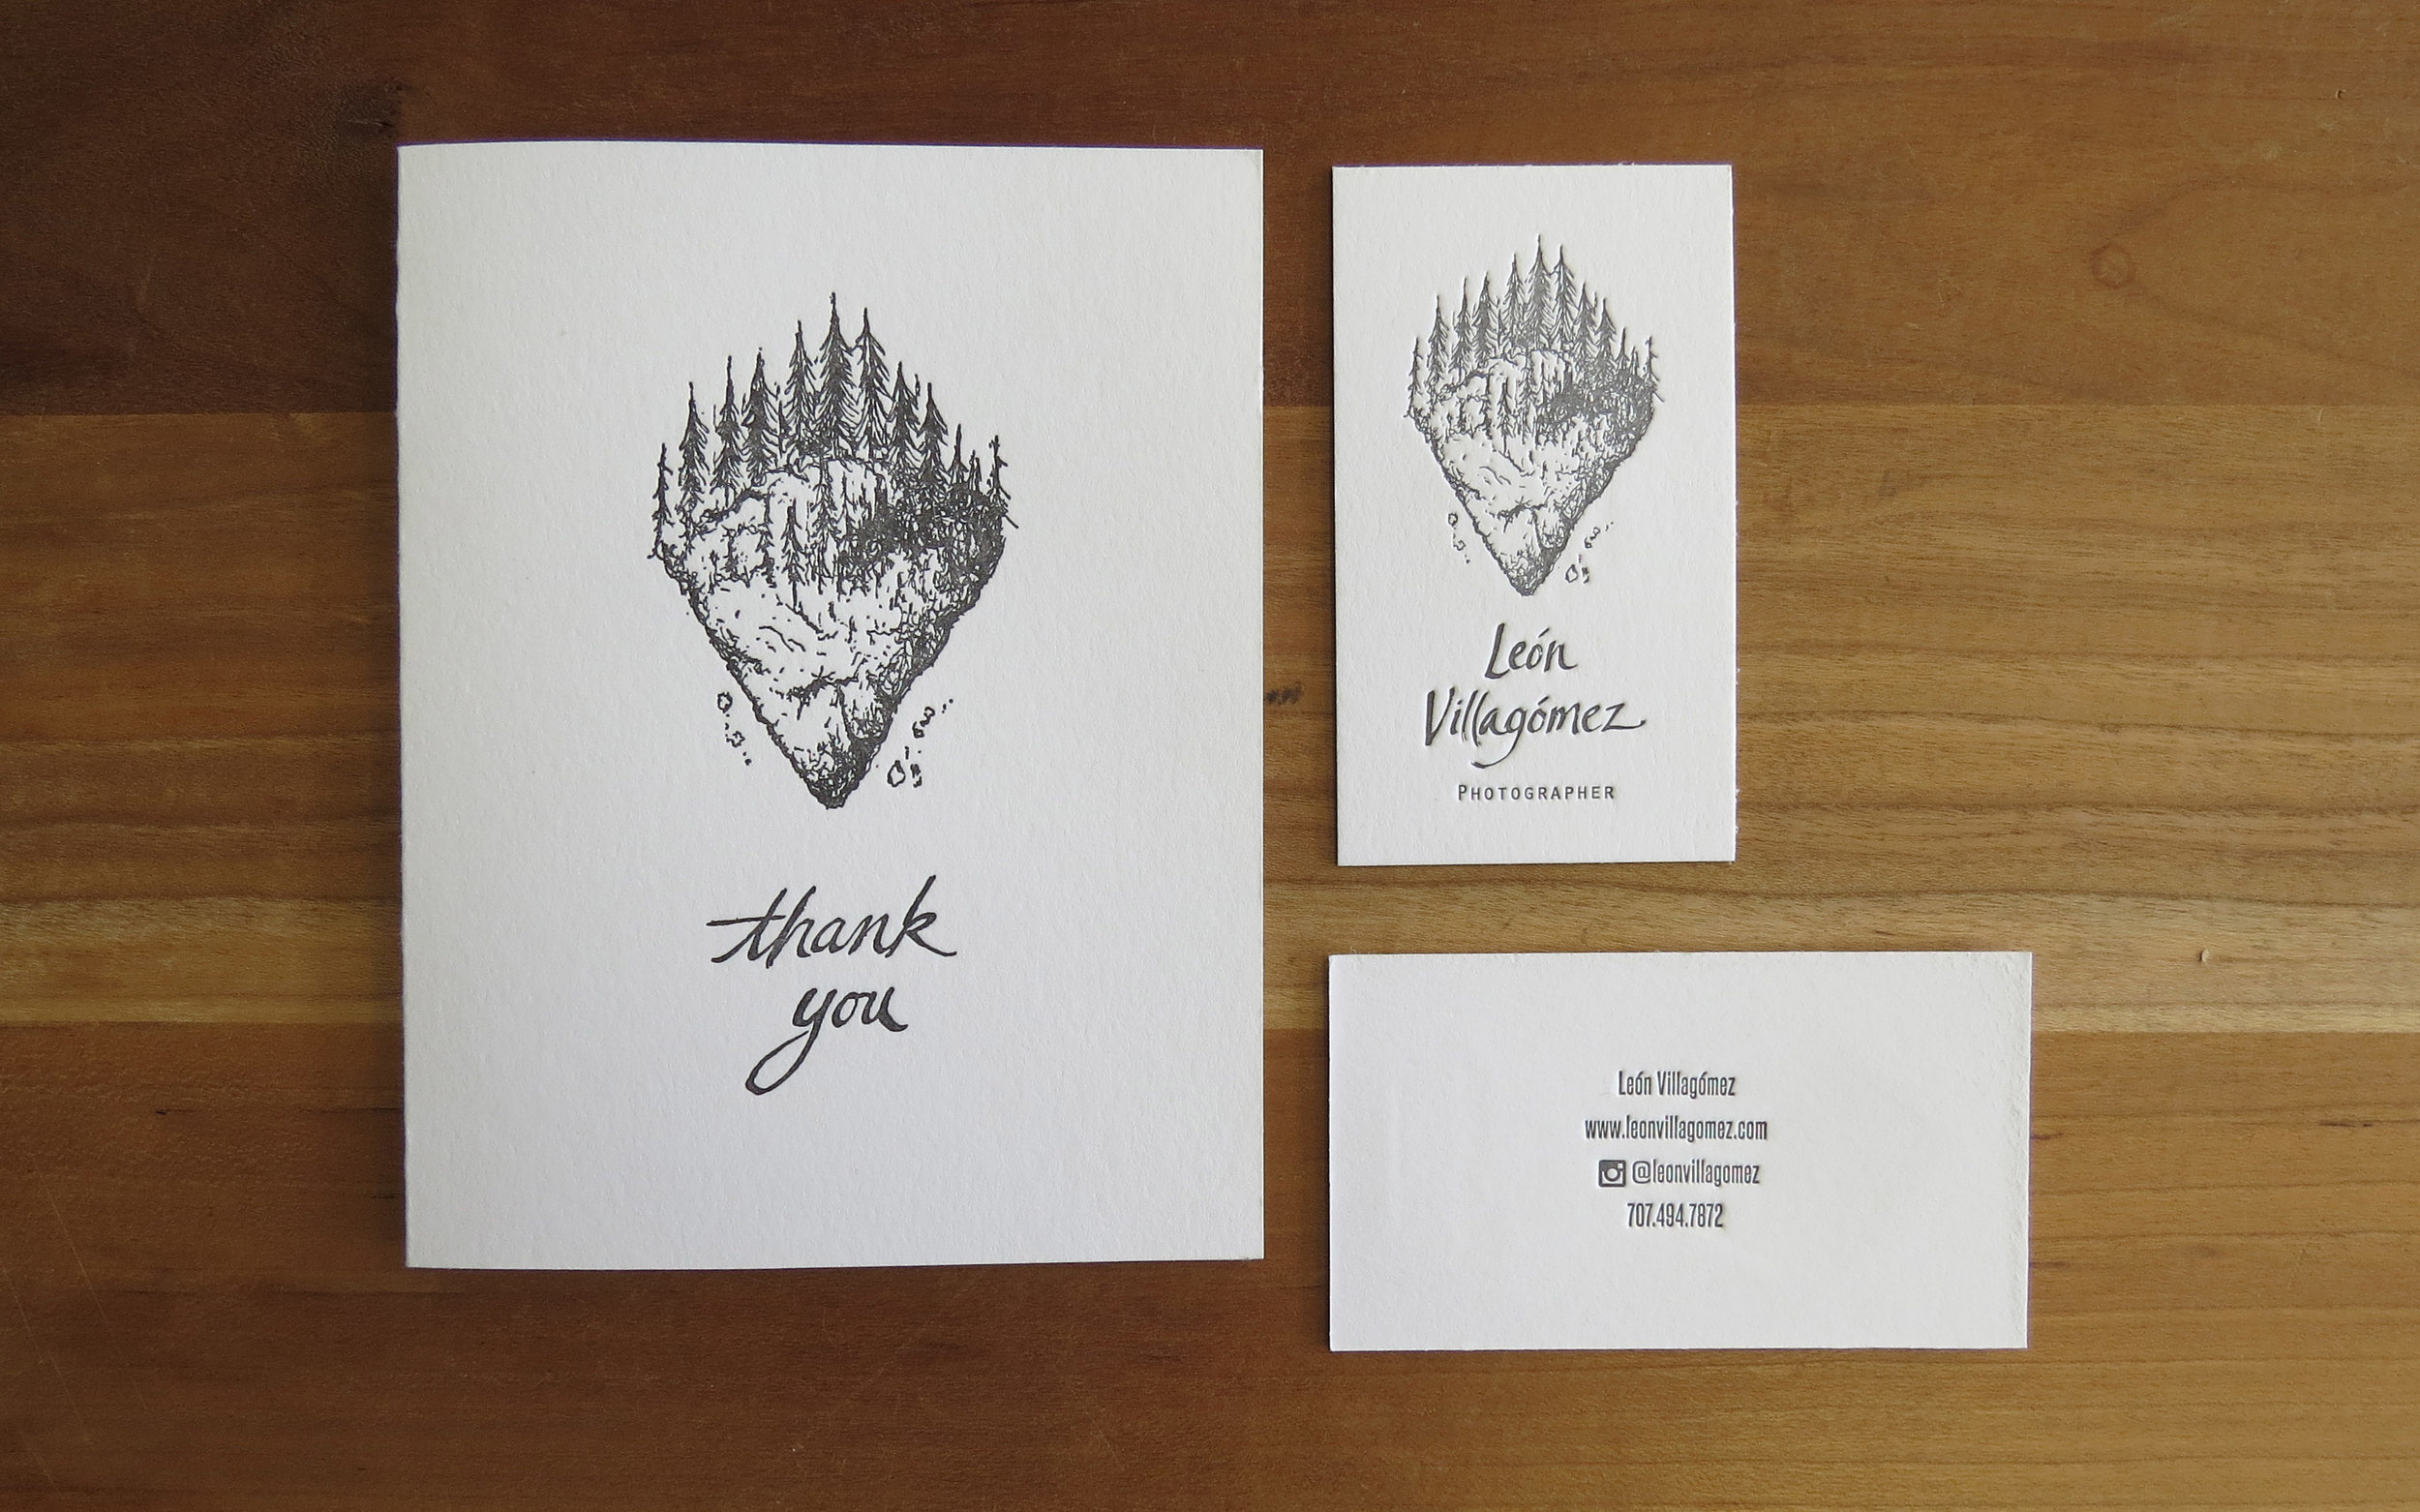 Leon Villagomez, Photographer - A2 thank you cards: one color. Business cards: one color, two-sided.